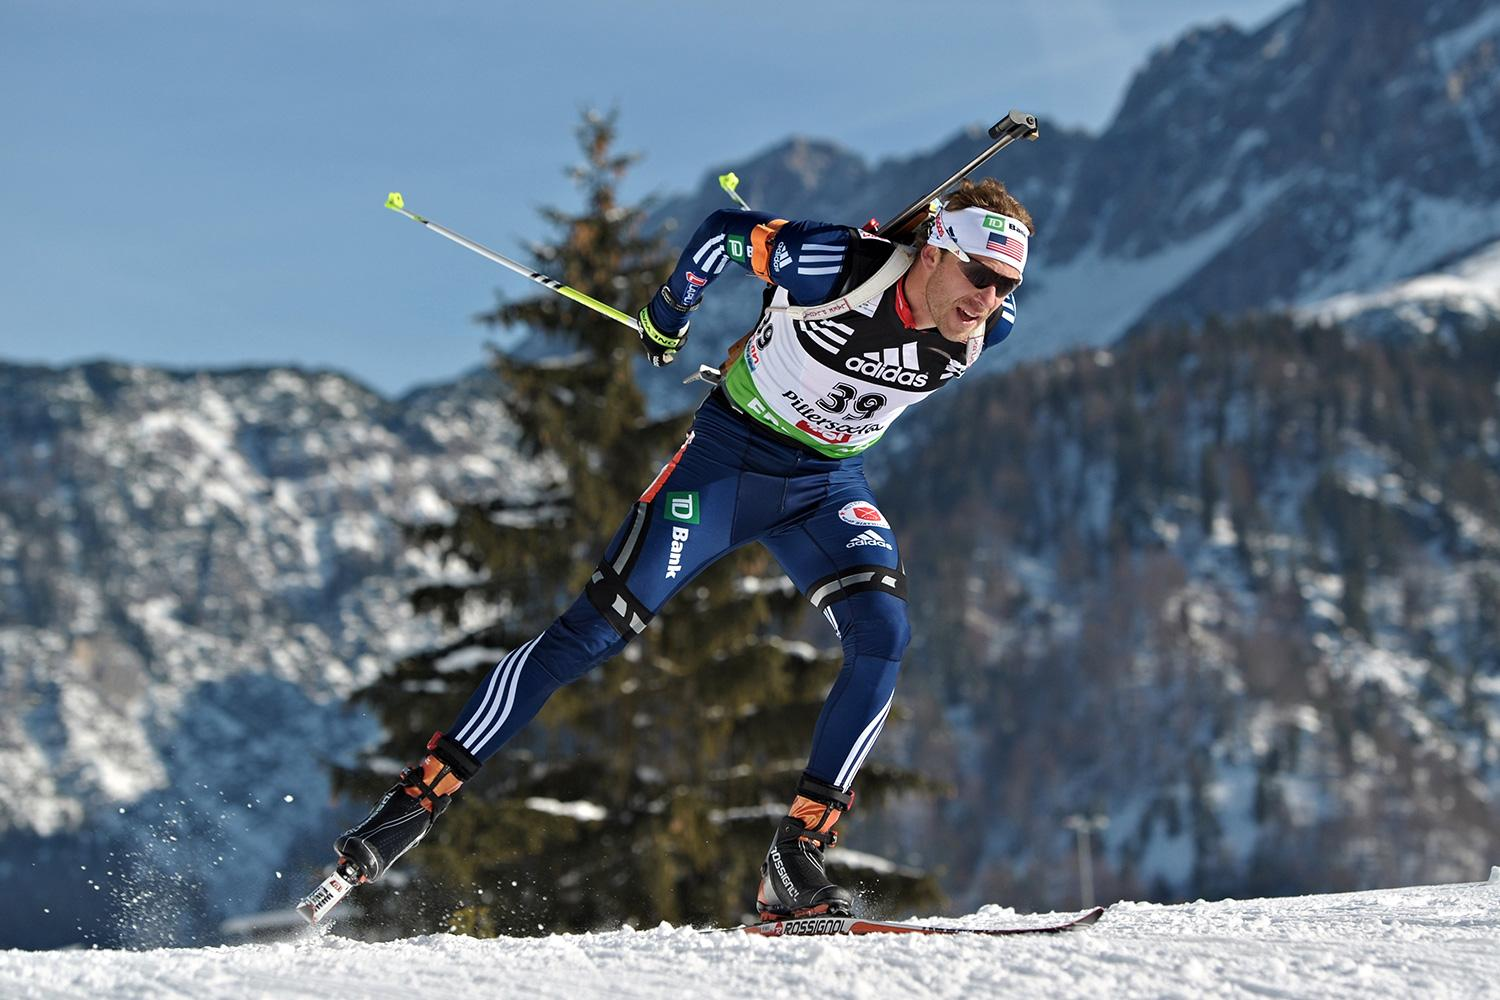 Shoot Ski Record How Biathletes Use Tech To Stay On